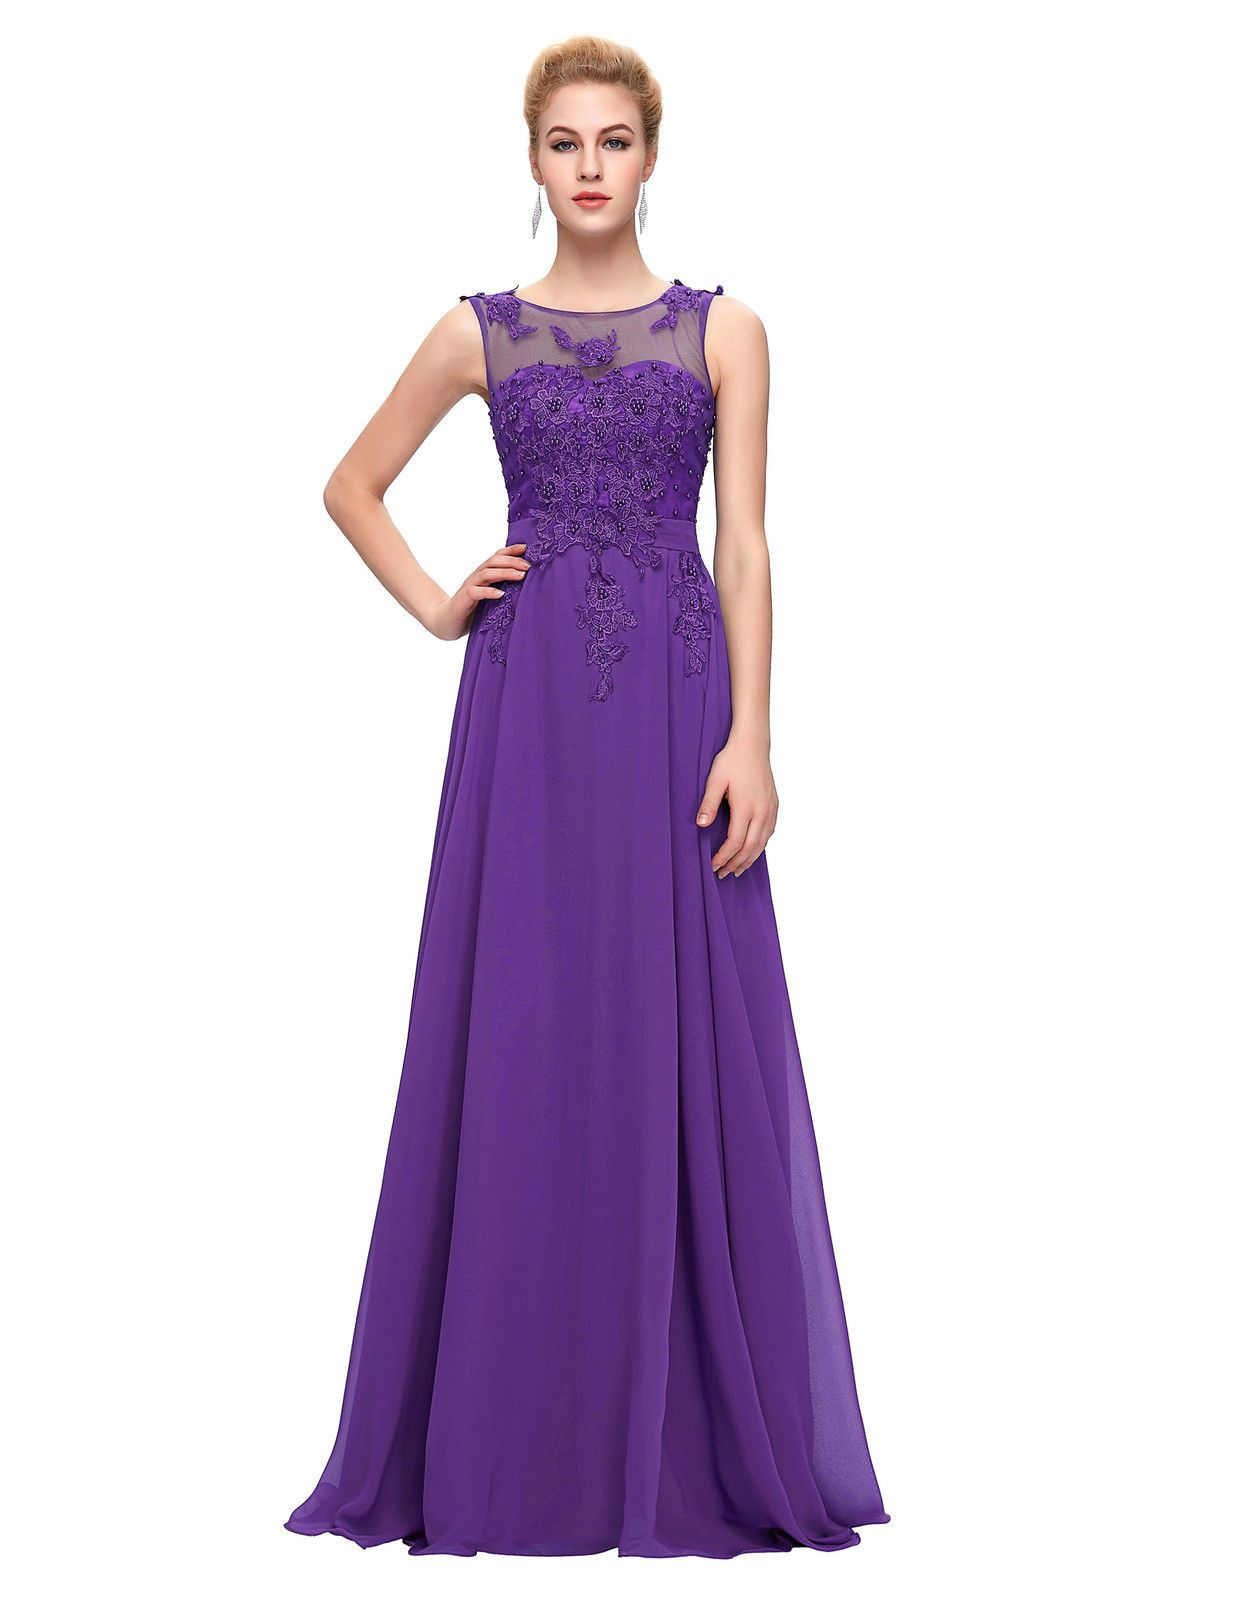 Adele cadbury purple lace chiffon applique beaded long maxi full